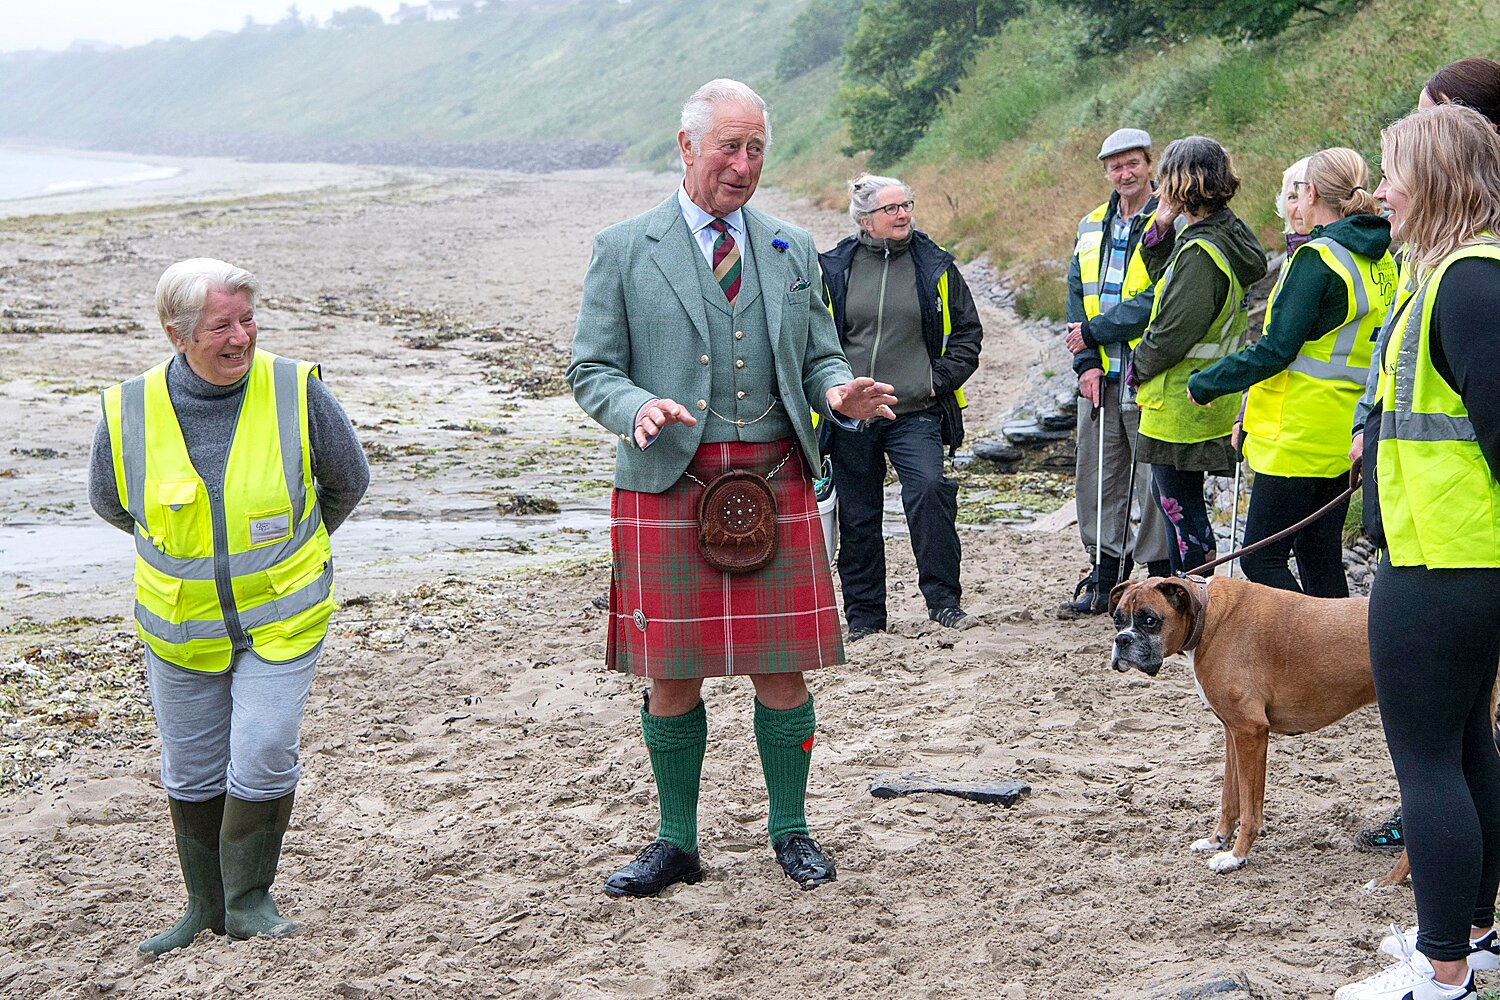 Prince Charles Just Wore a Kilt to the Beach — See His Seaside Tartan! |  PEOPLE.com